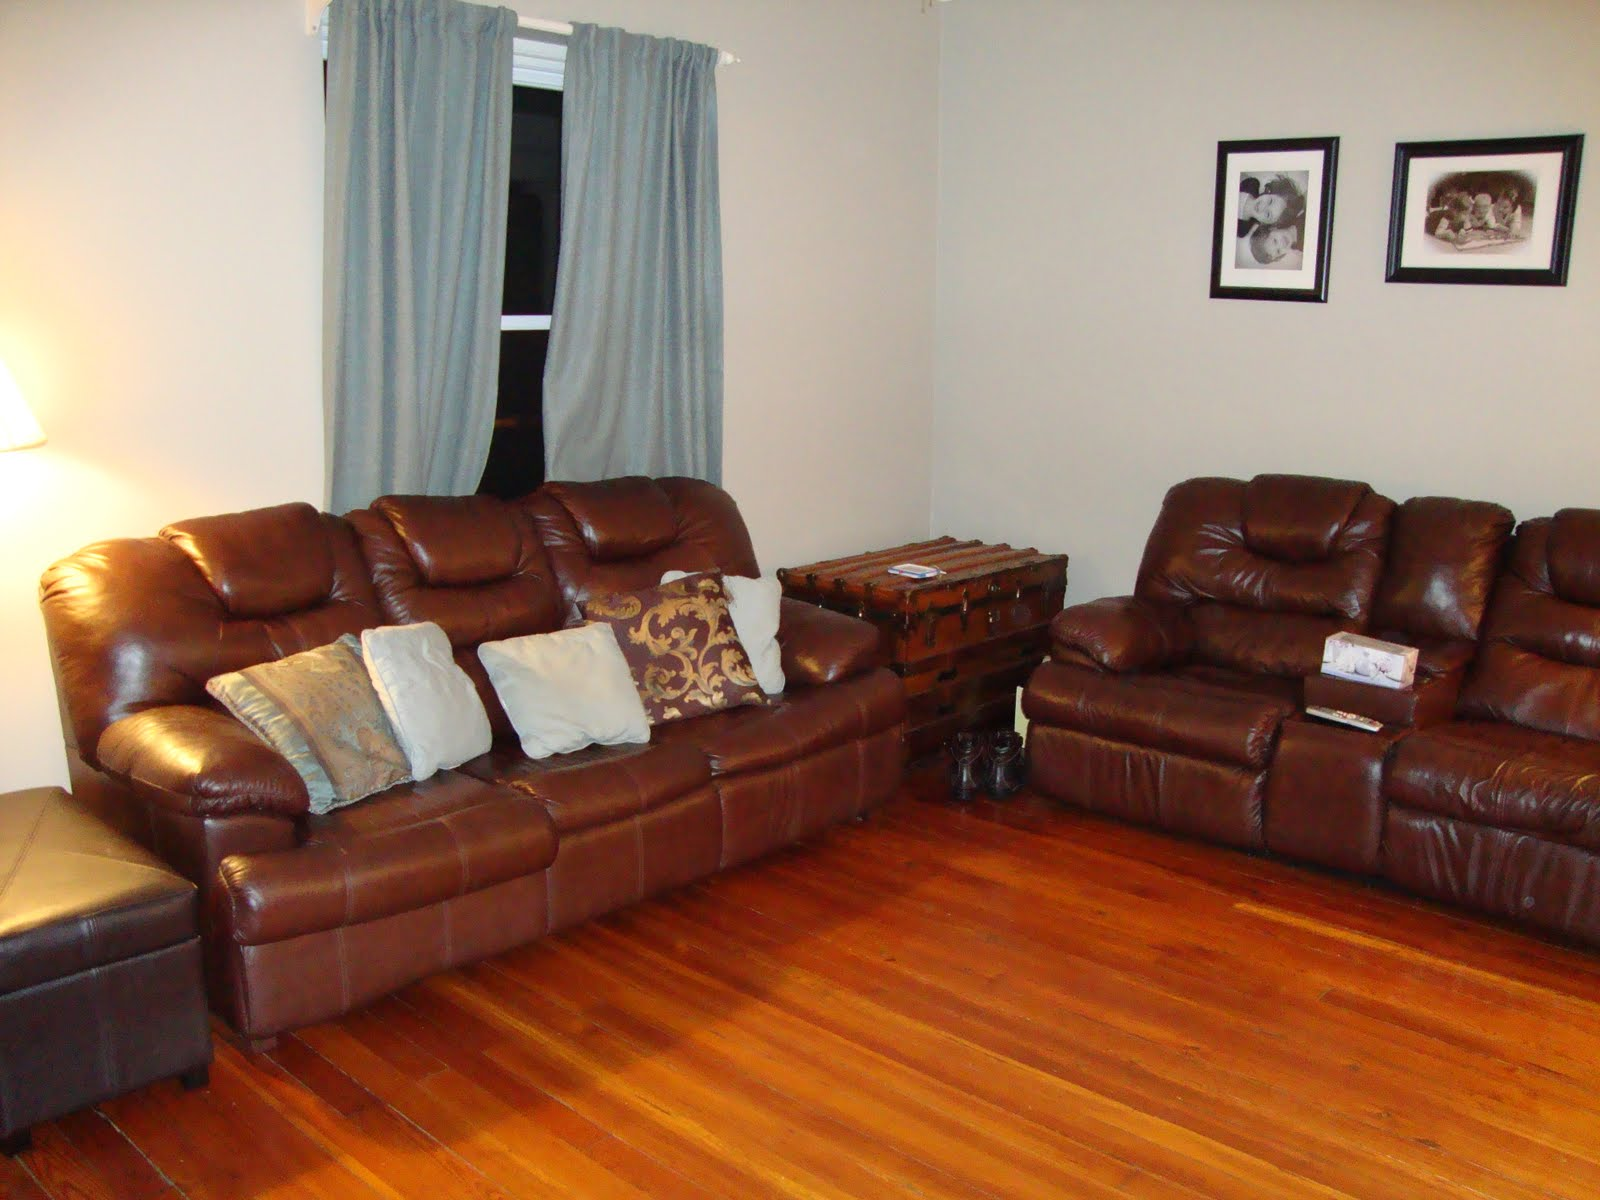 27 south 3rd street perkasie pa living room 17 x 12 ft